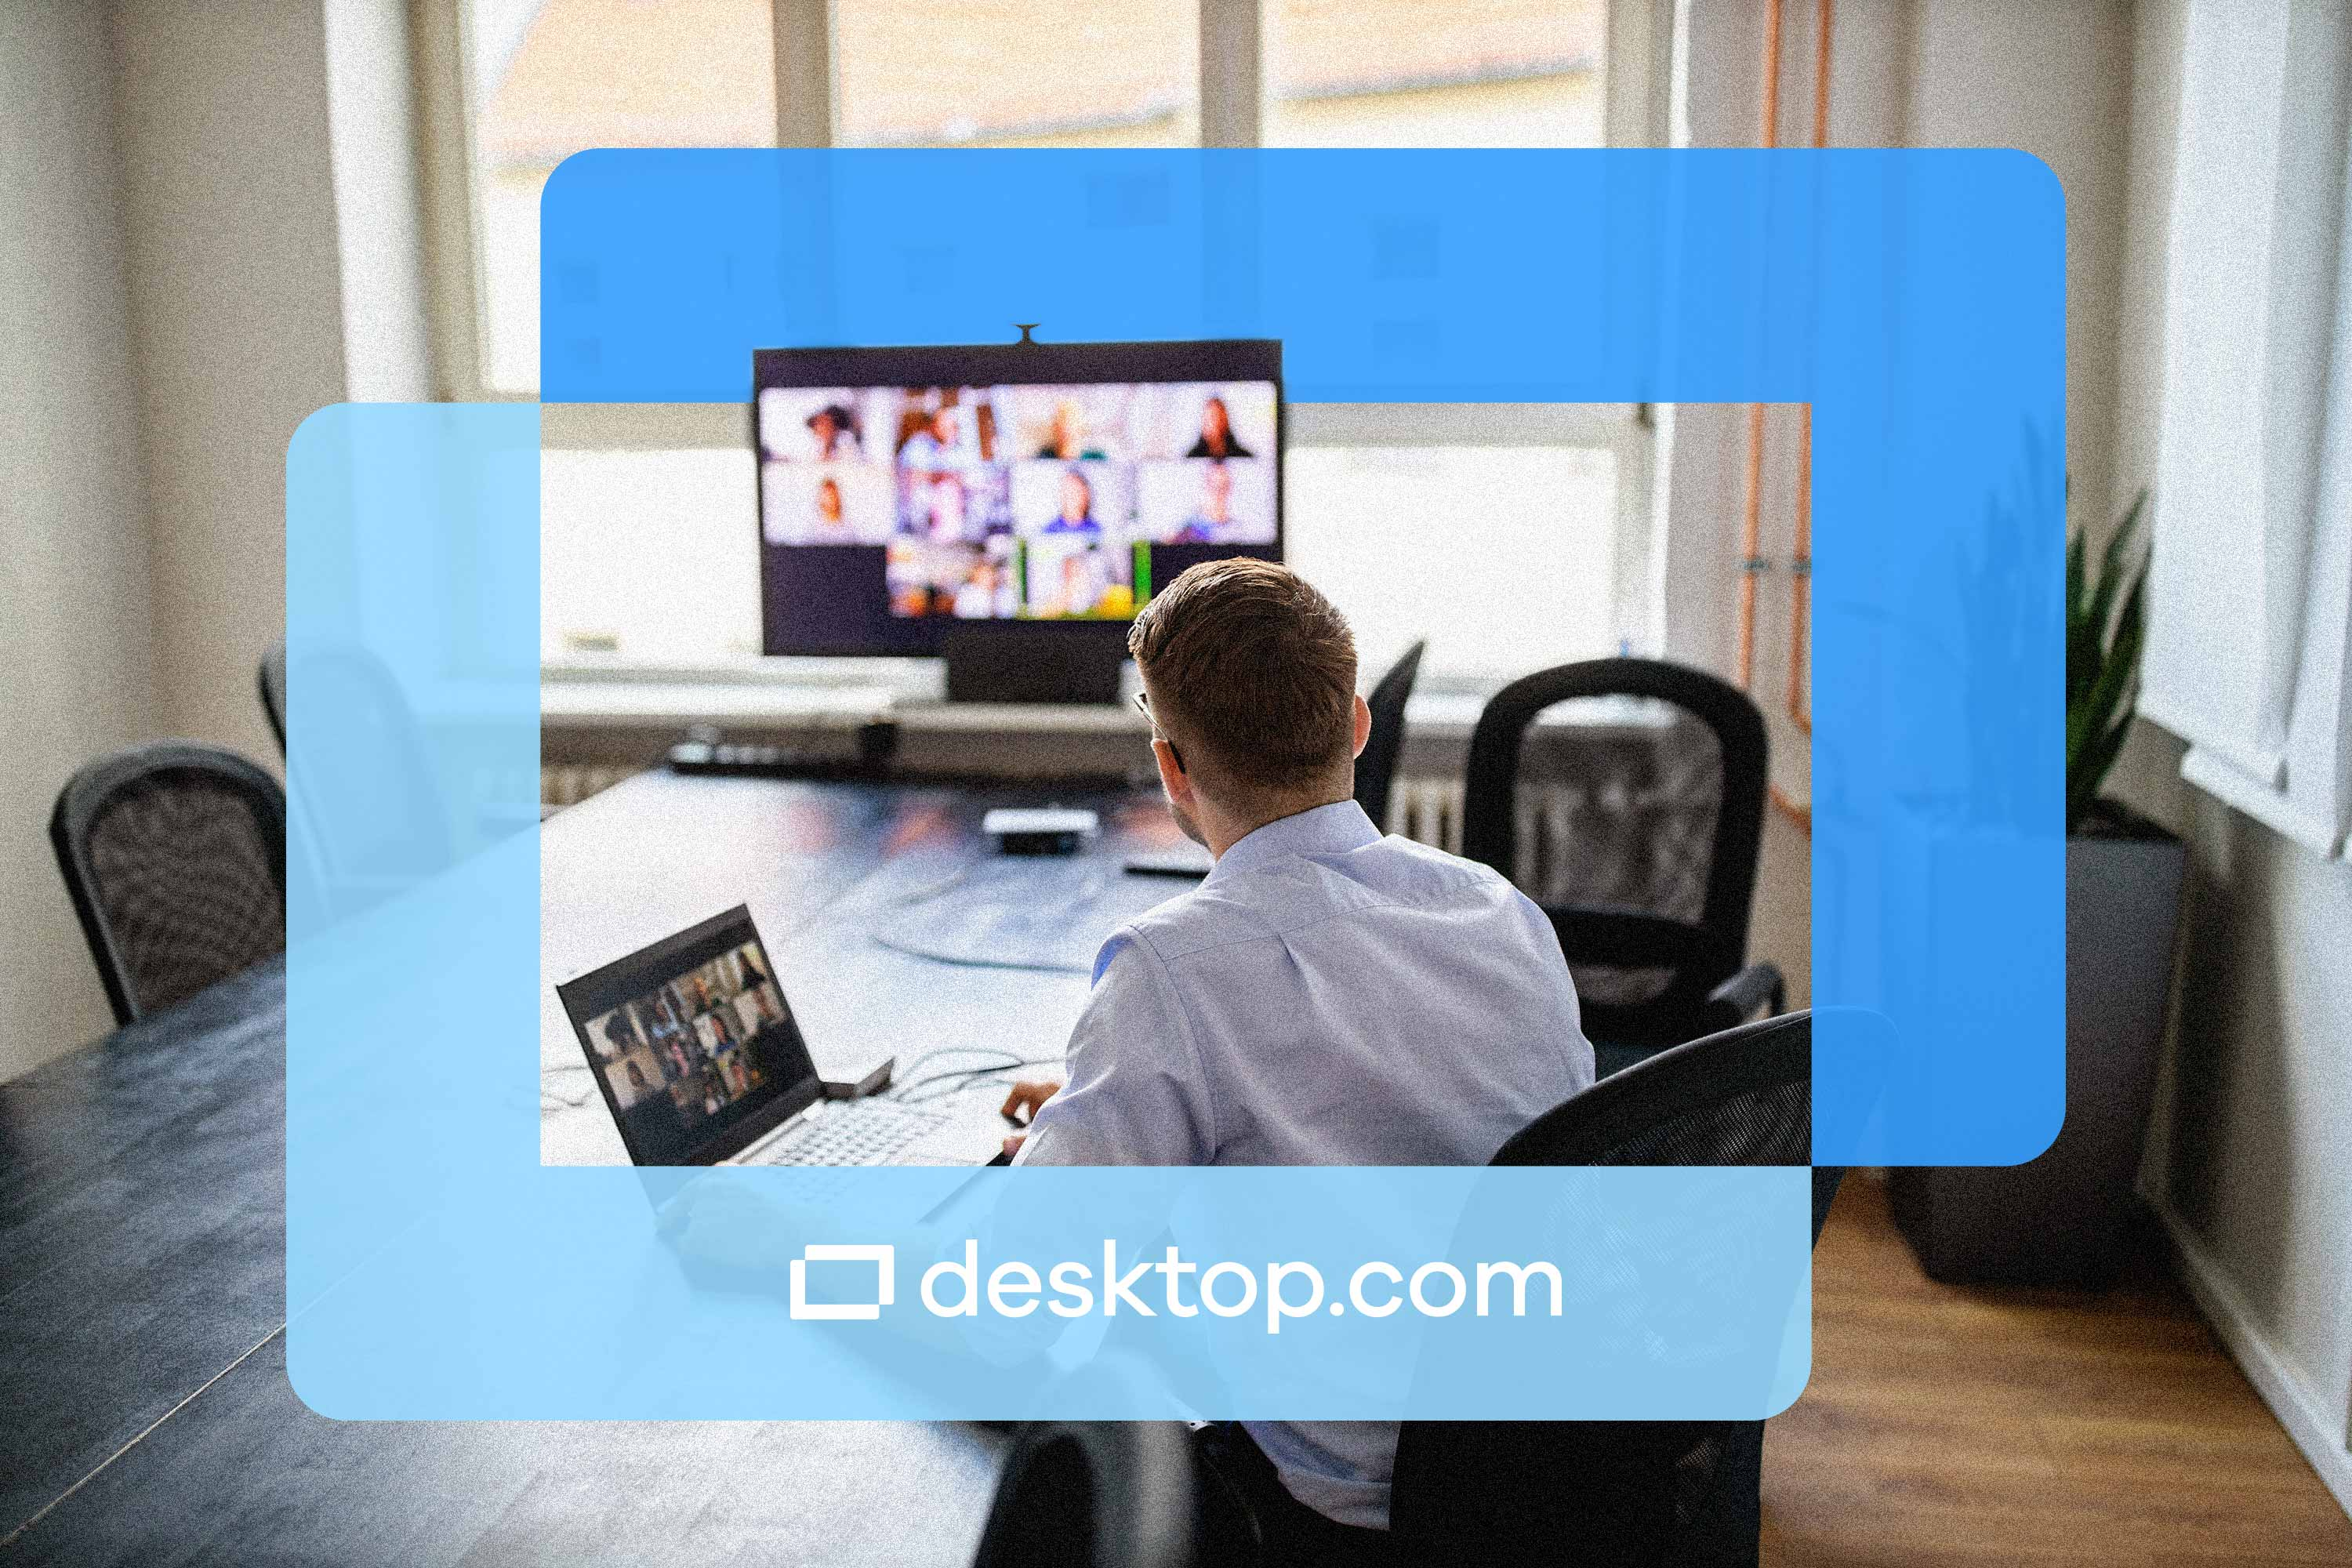 Man looks at computer screen with video meeting taking place